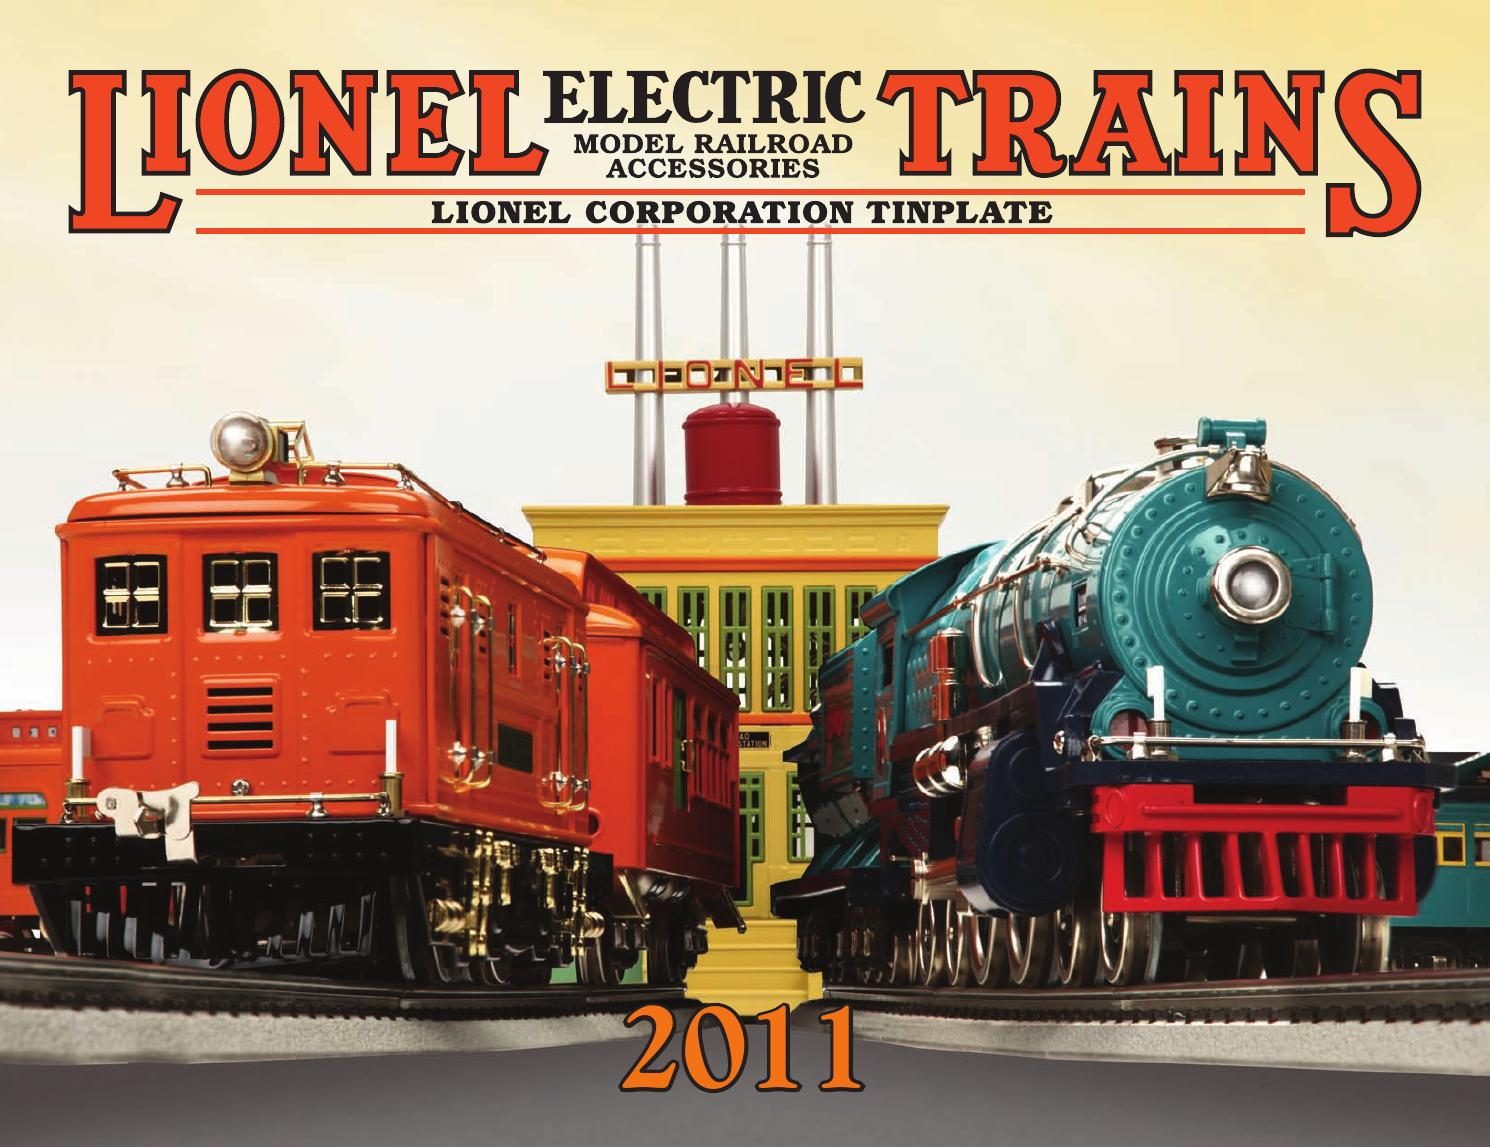 Wiring Diagram For Lionel Train Engine 408e